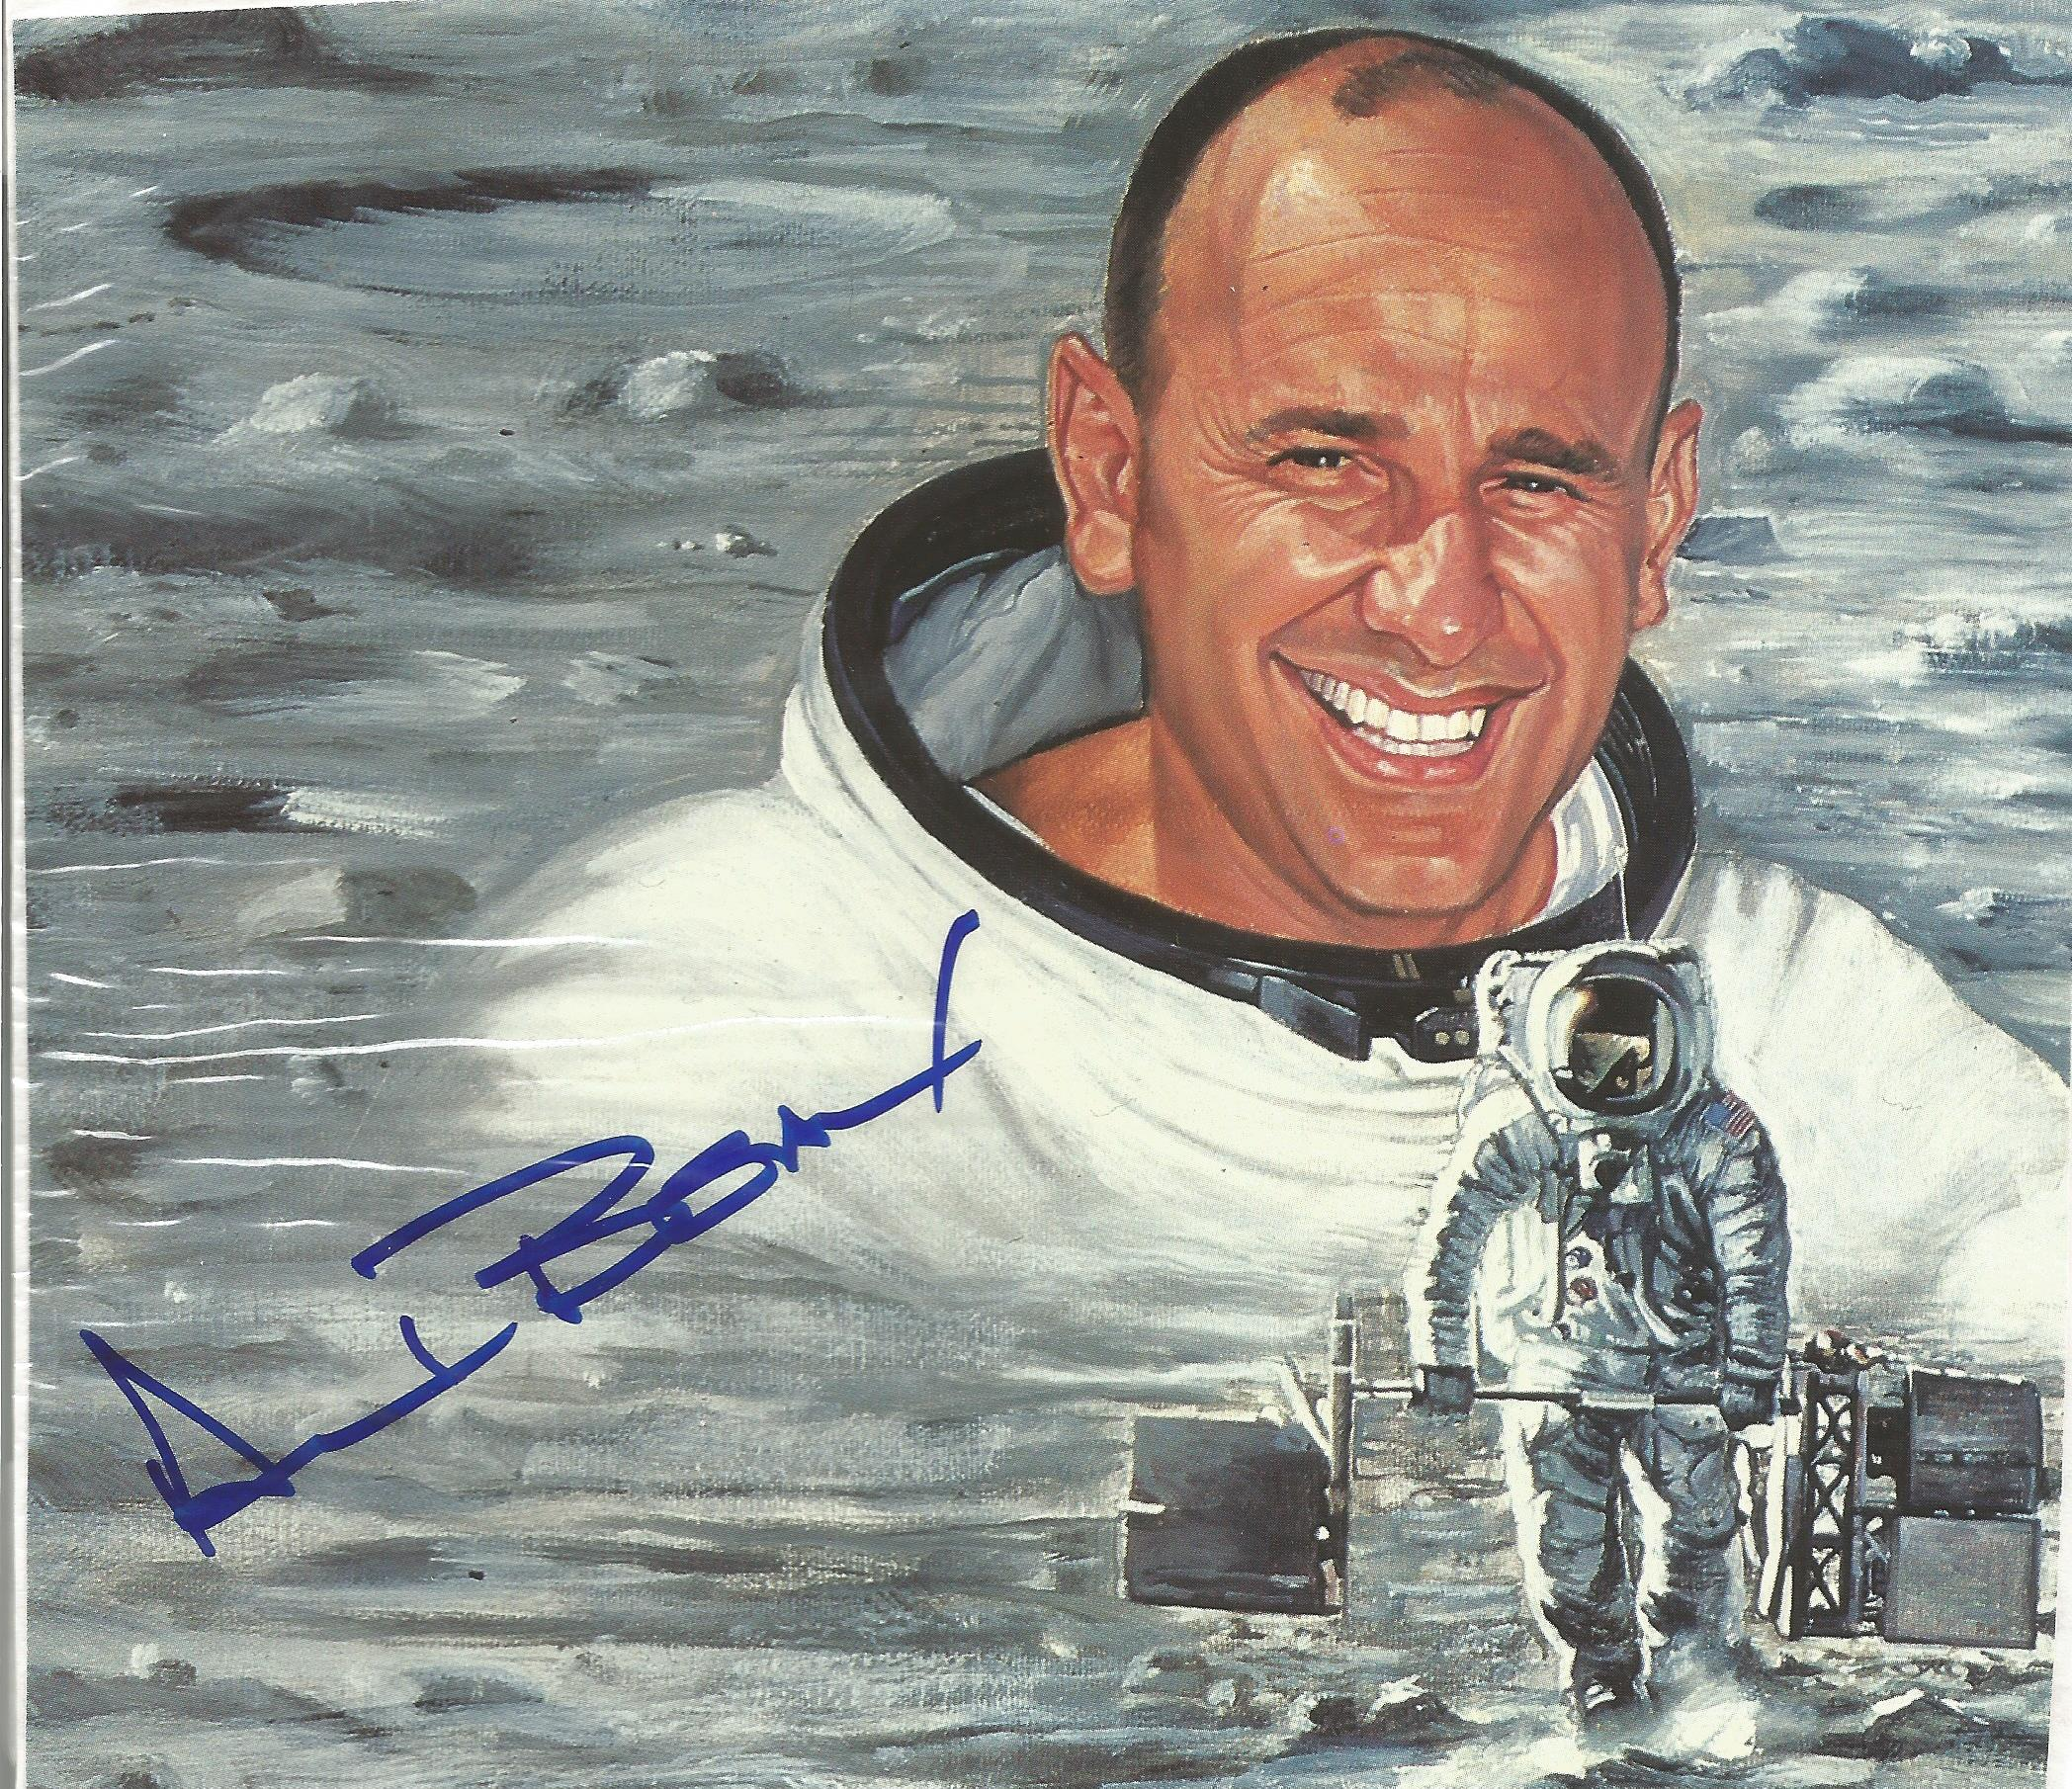 NASA Moon Walkers space collection 5 superb signed 14x15cm colour prints from astronauts Alan - Image 3 of 3